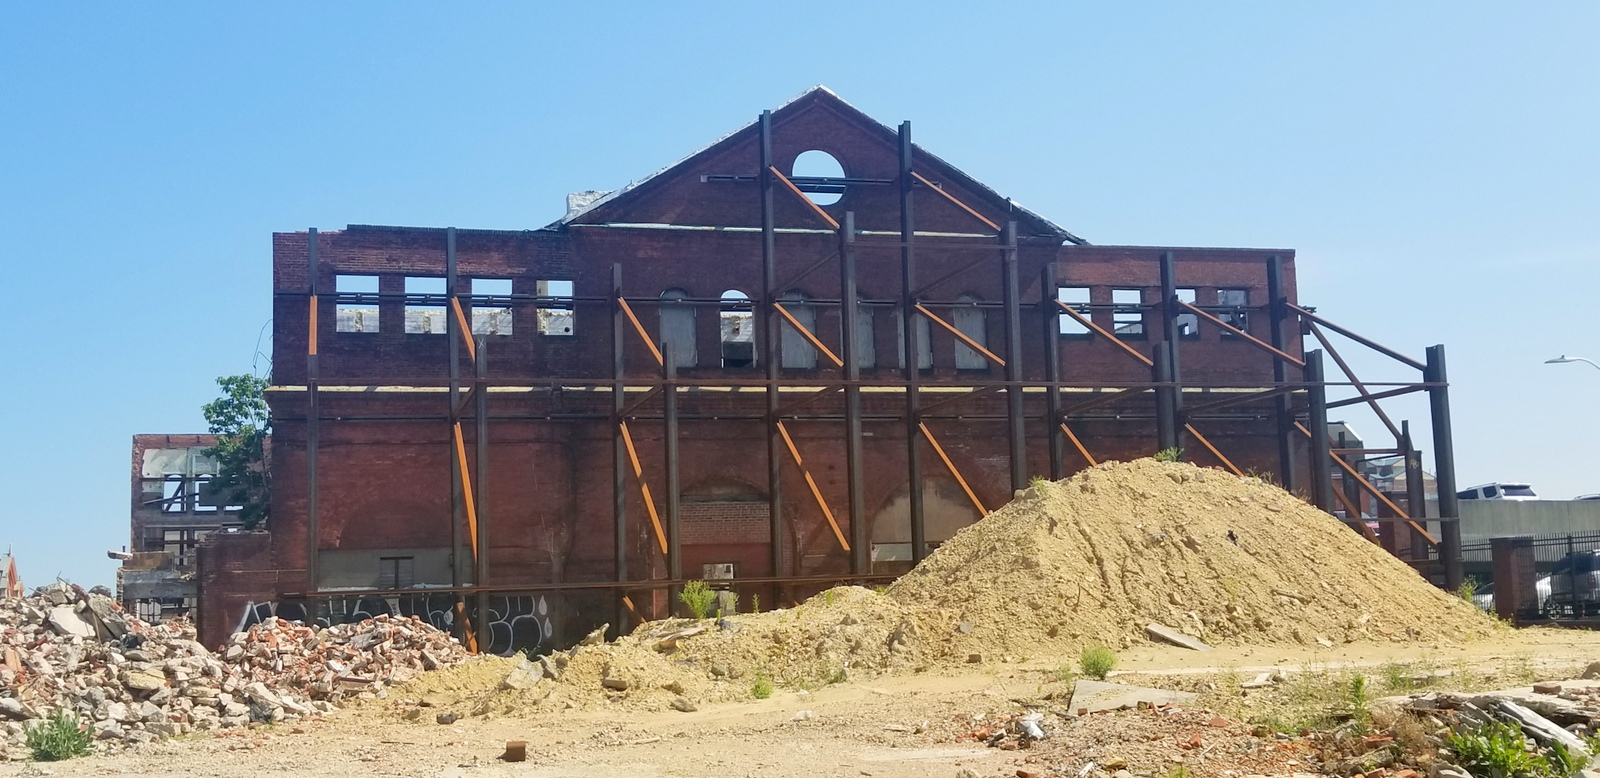 Work on a redevelopment of the Hendler Creamery building has been stalled for months. (Ed Gunts)